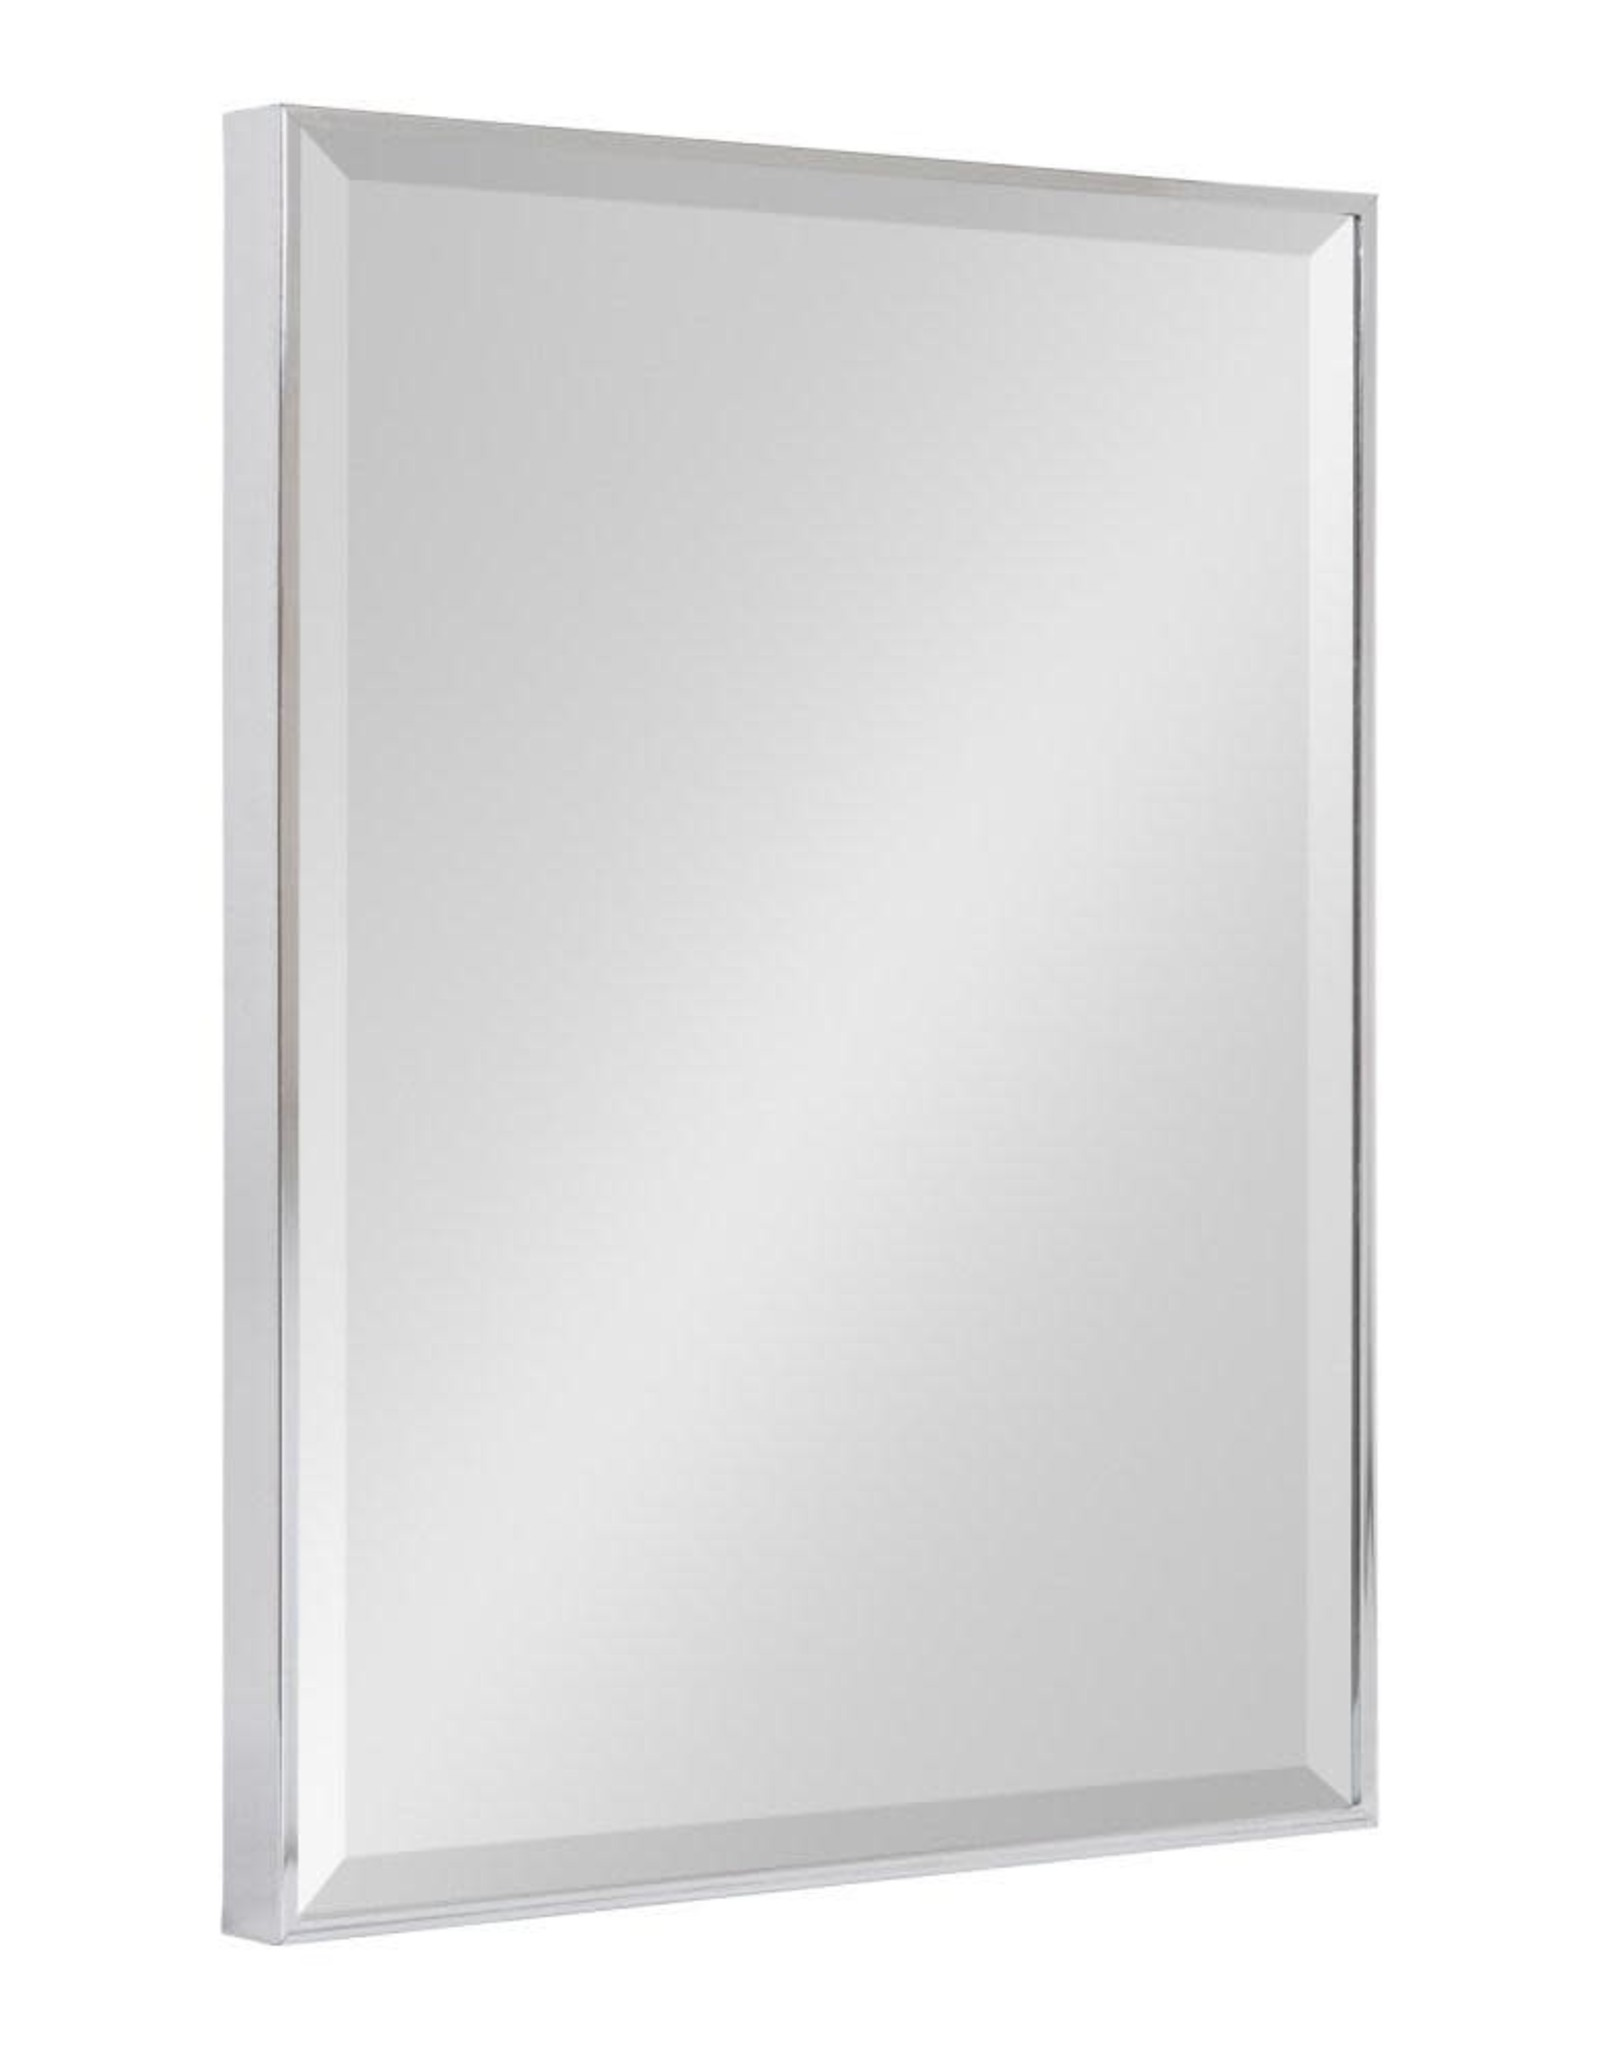 Kate and Laurel Medium Rectangle Chrome Silver Beveled Glass Contemporary Mirror (24.75 in. H x 18.75 in. W)